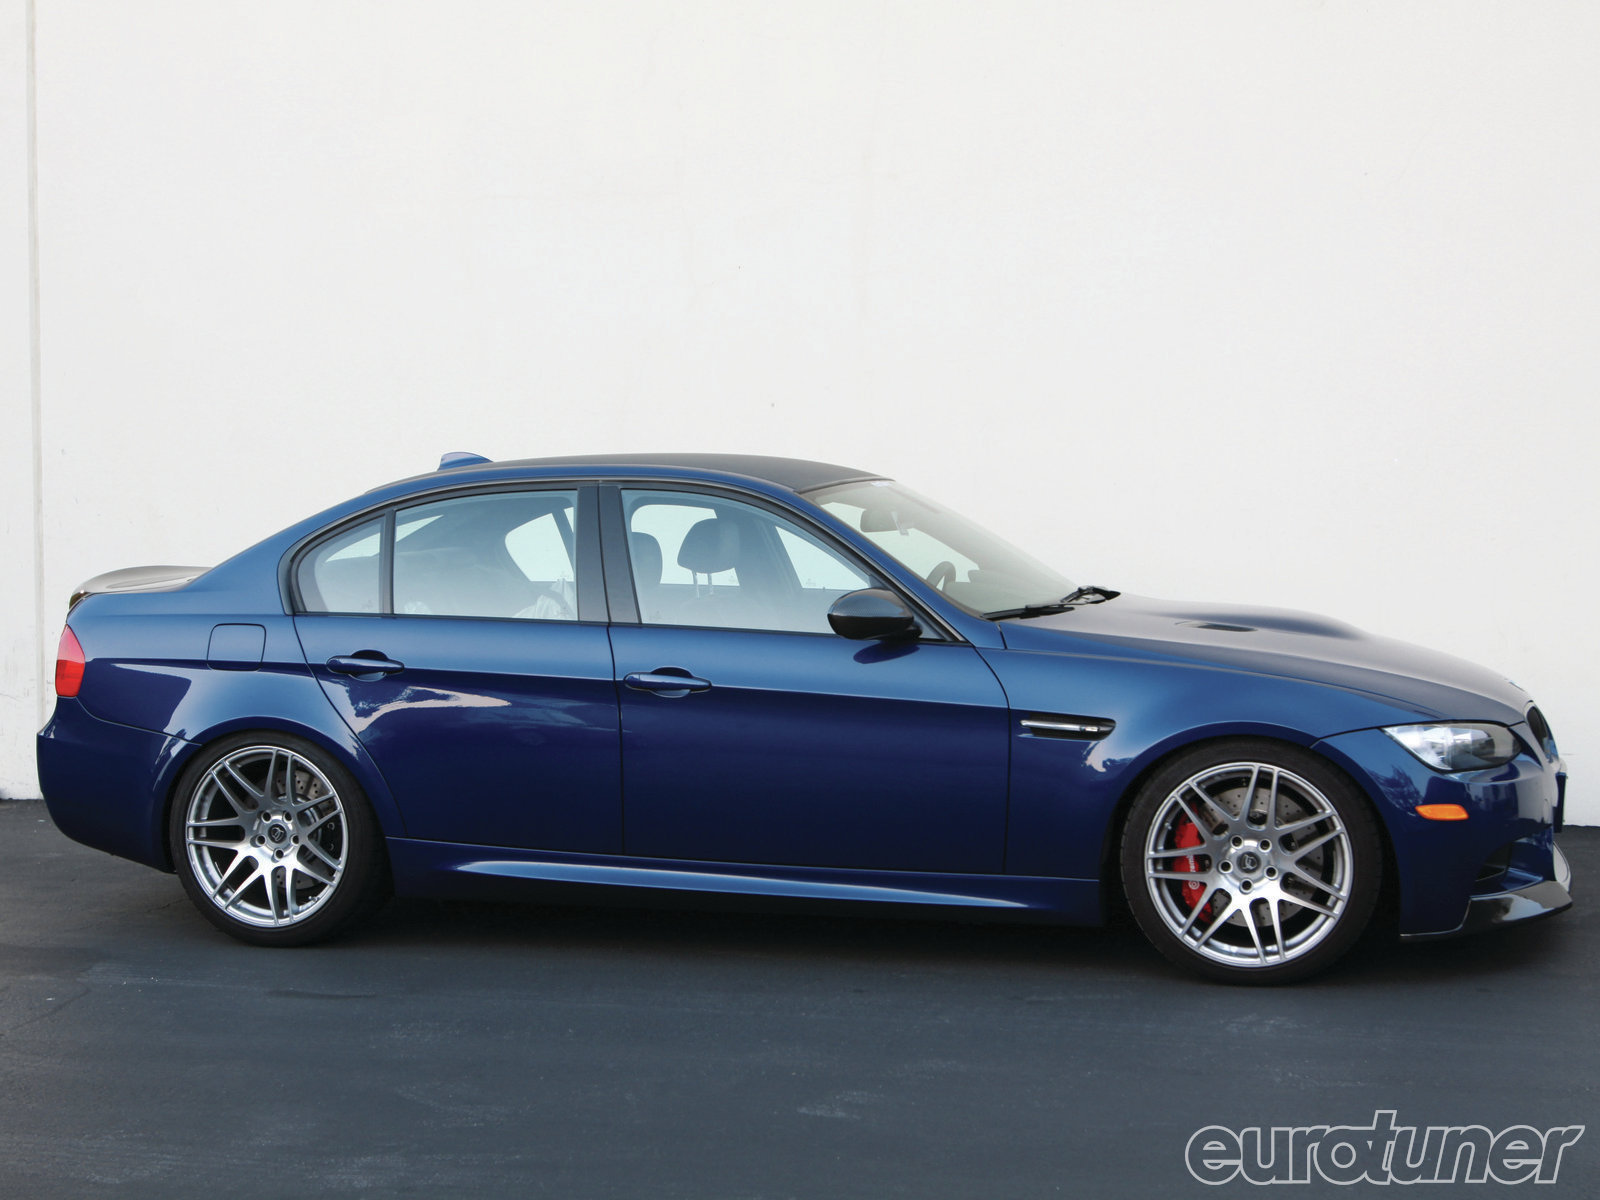 hight resolution of eurp 1109 01 2010 bmw m3 cover